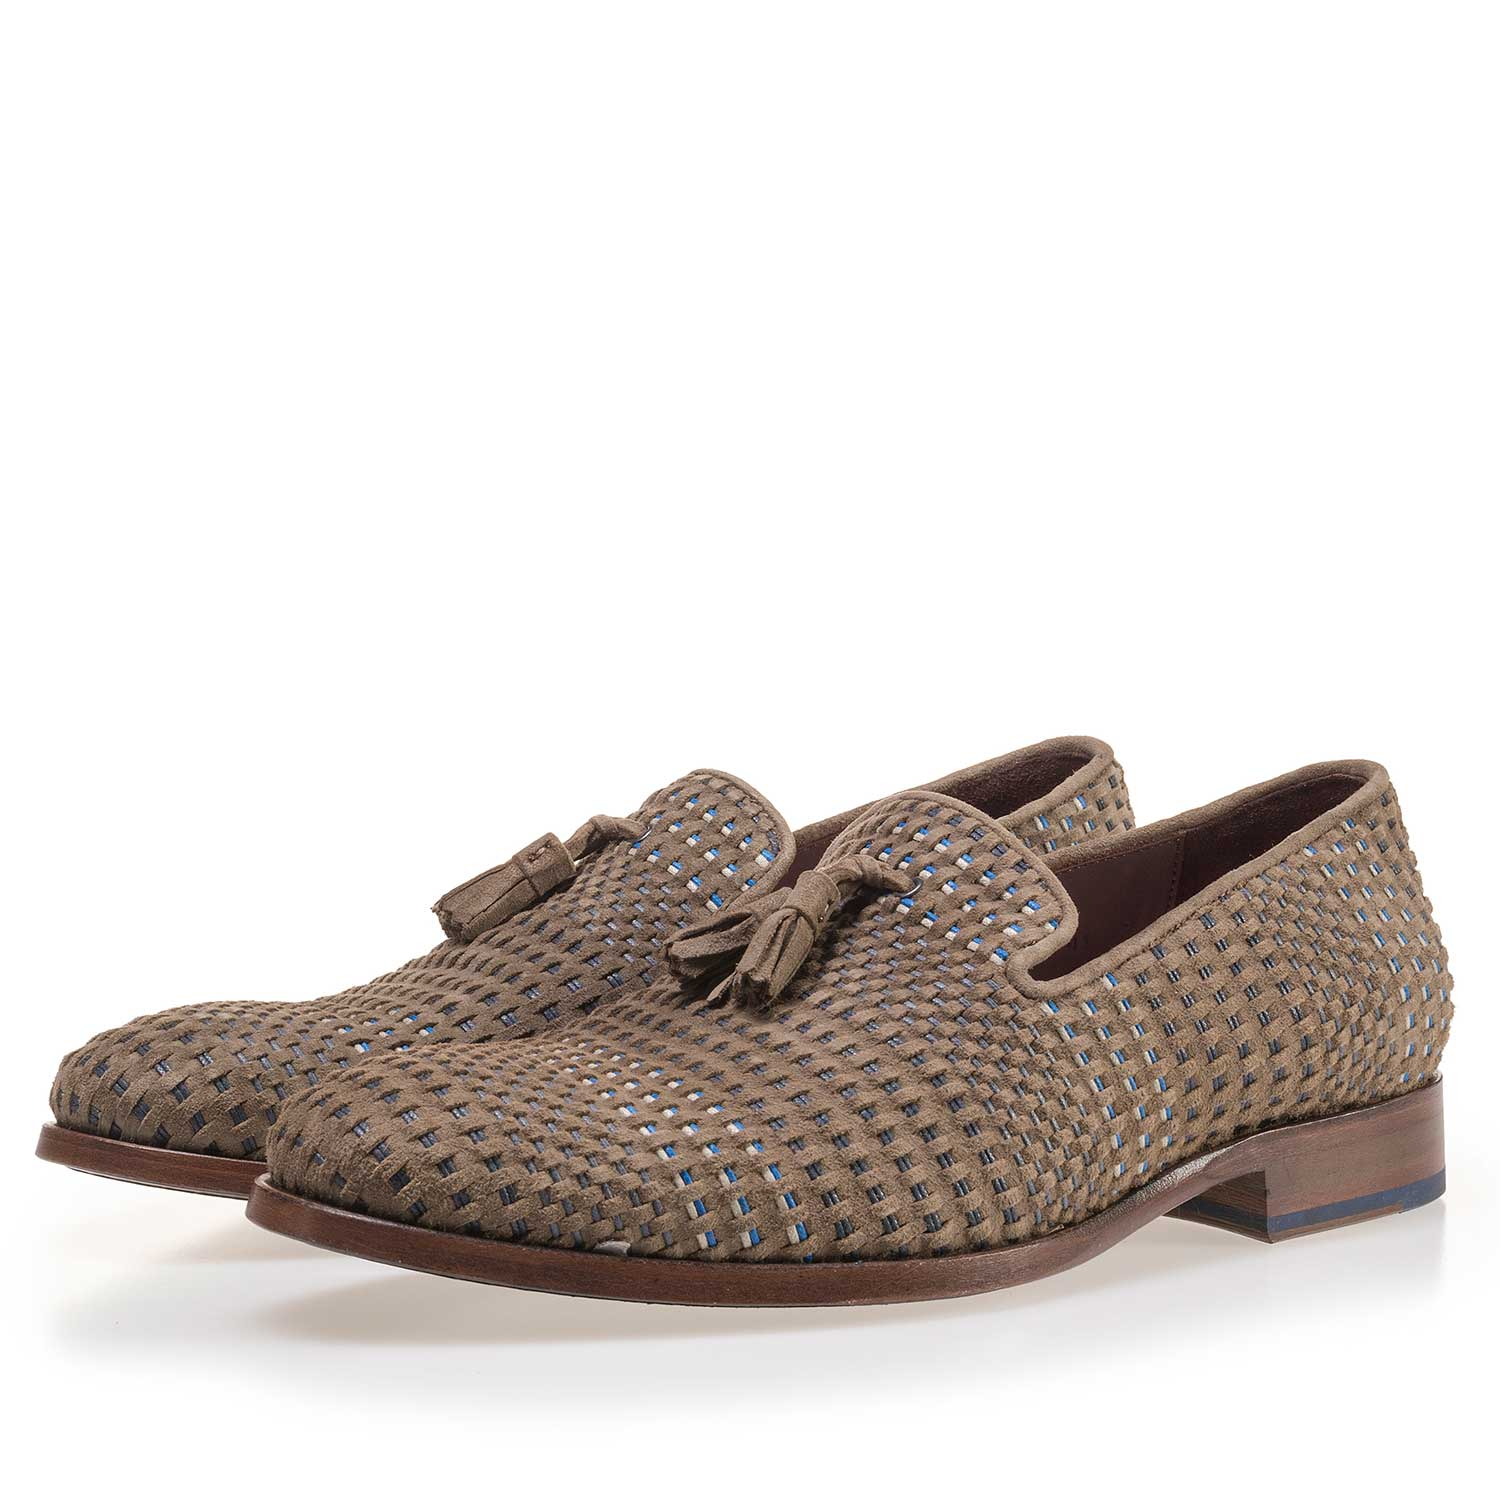 11076/01 - Taupe-coloured, braided suede leather loafer